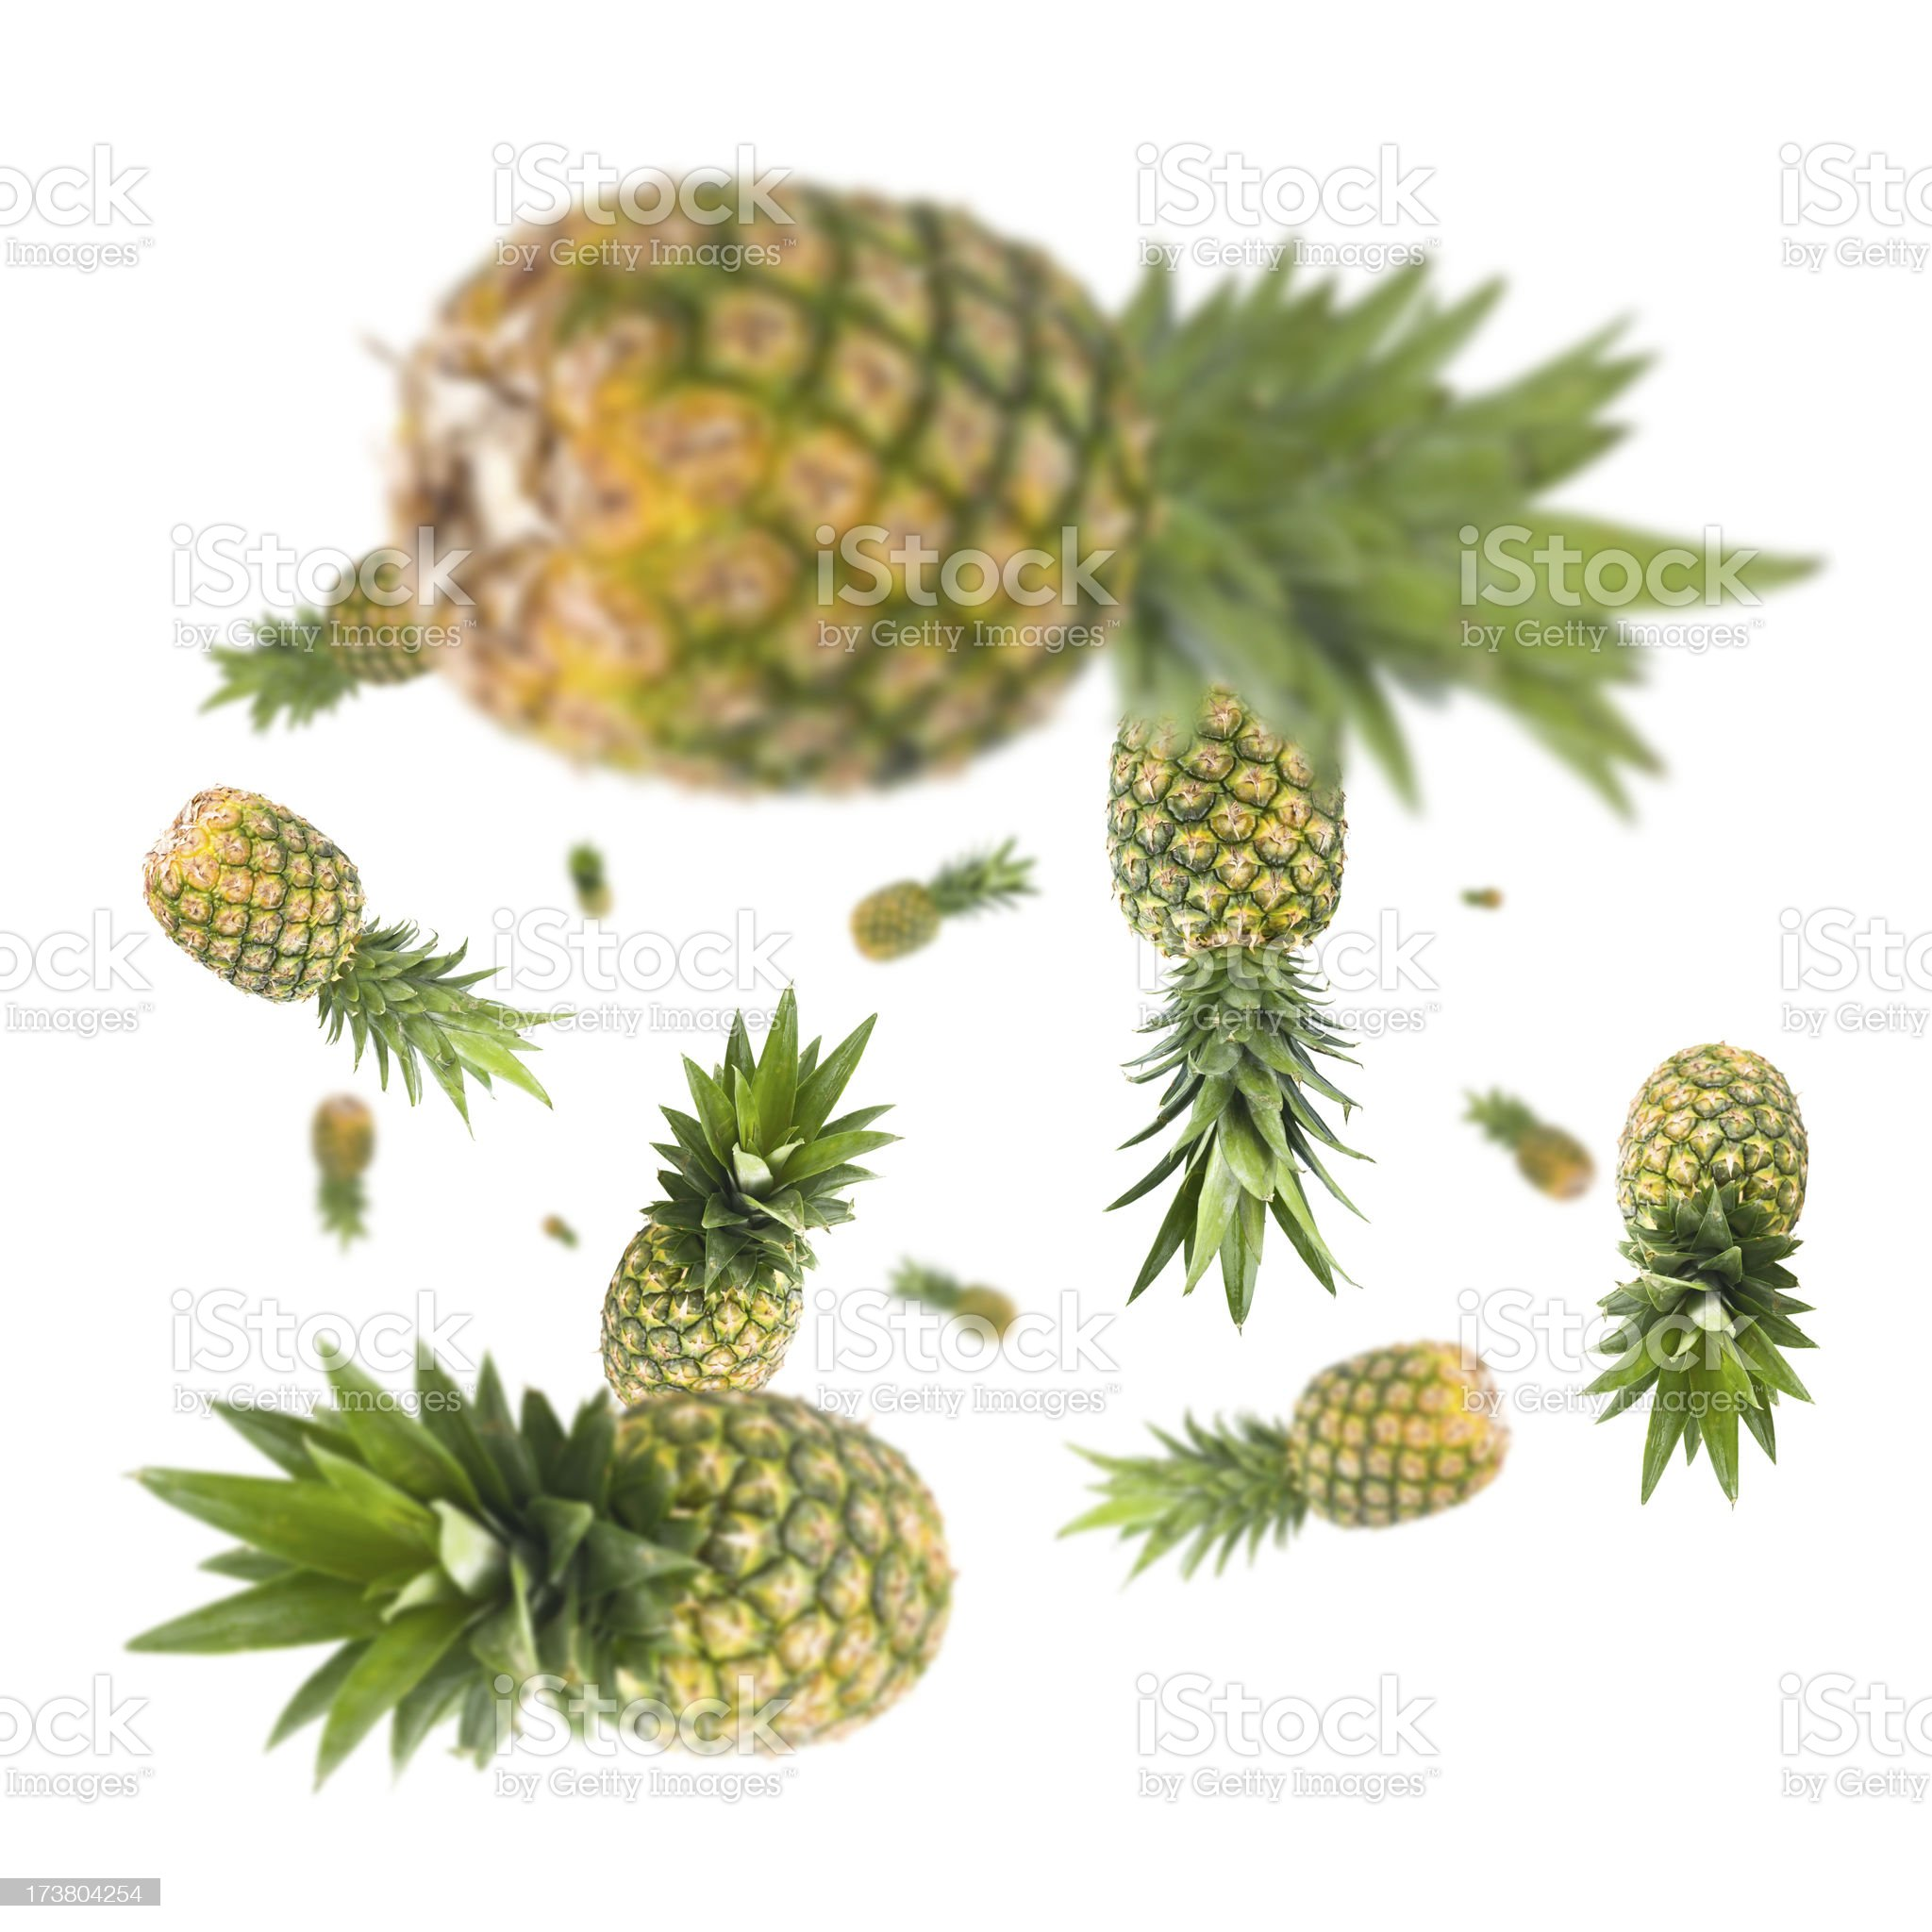 Pineapple Explosion royalty-free stock photo